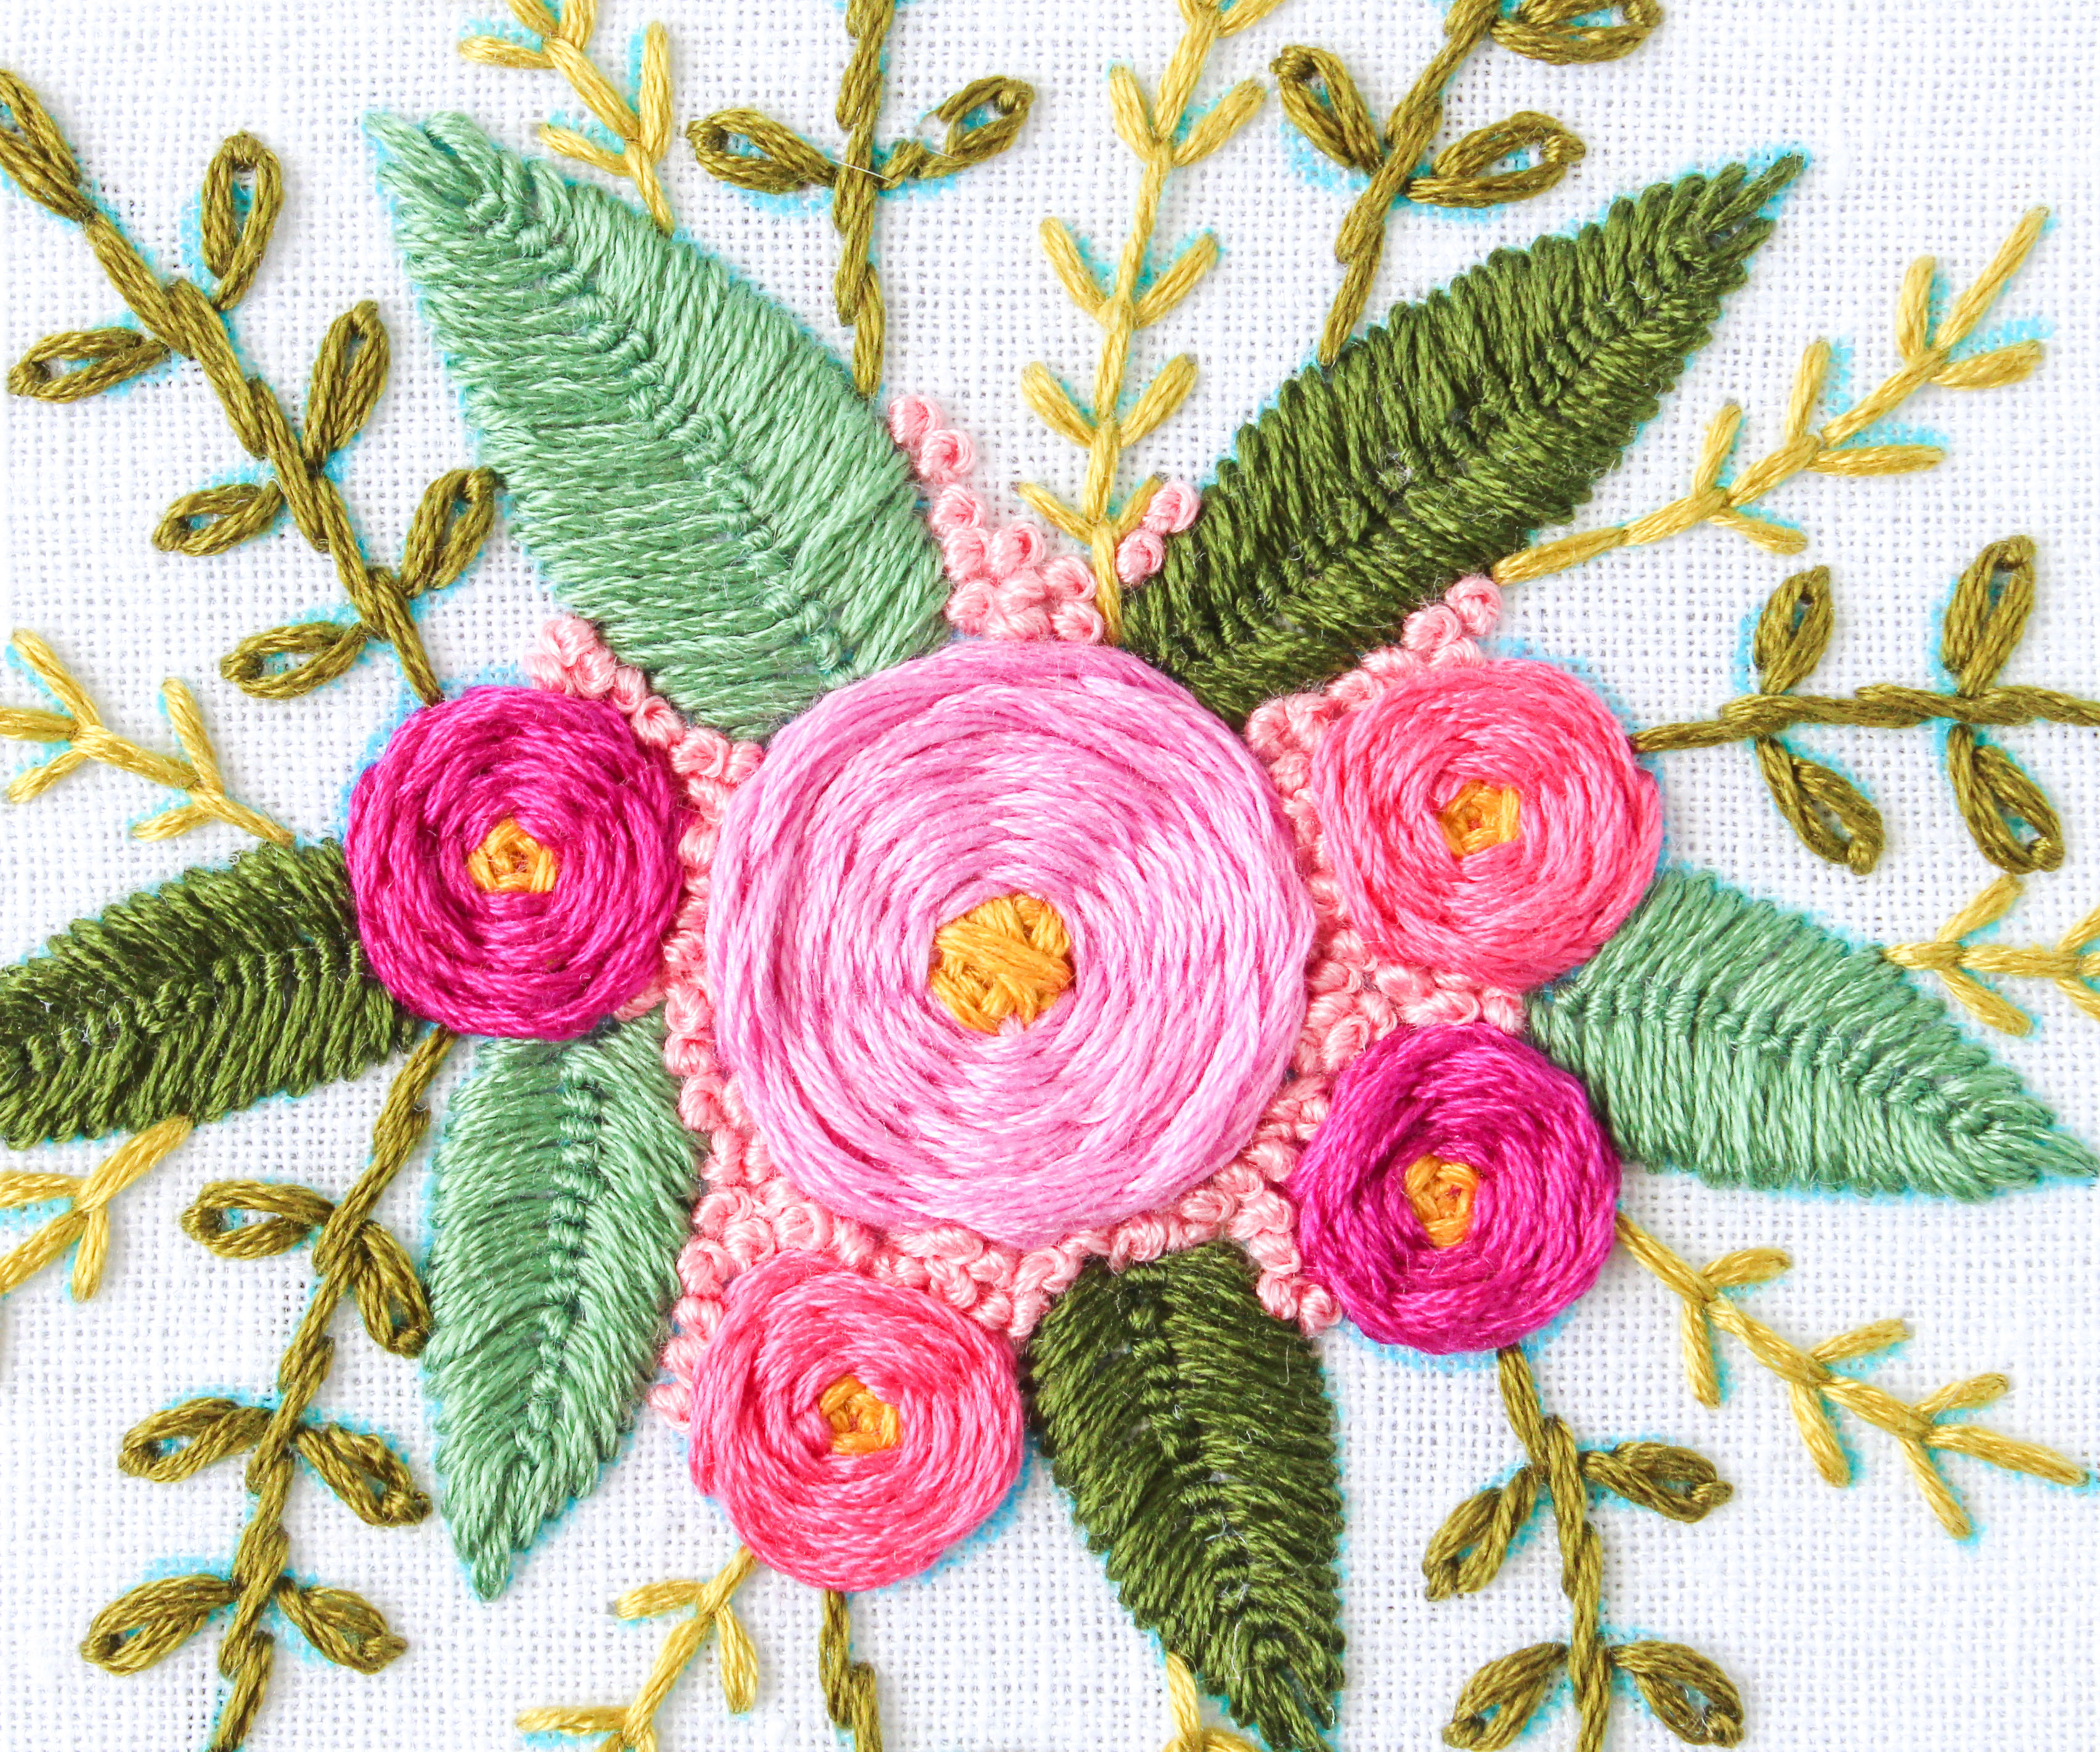 Rose Patterns For Embroidery How To Hand Embroider Flowers 7 Steps With Pictures